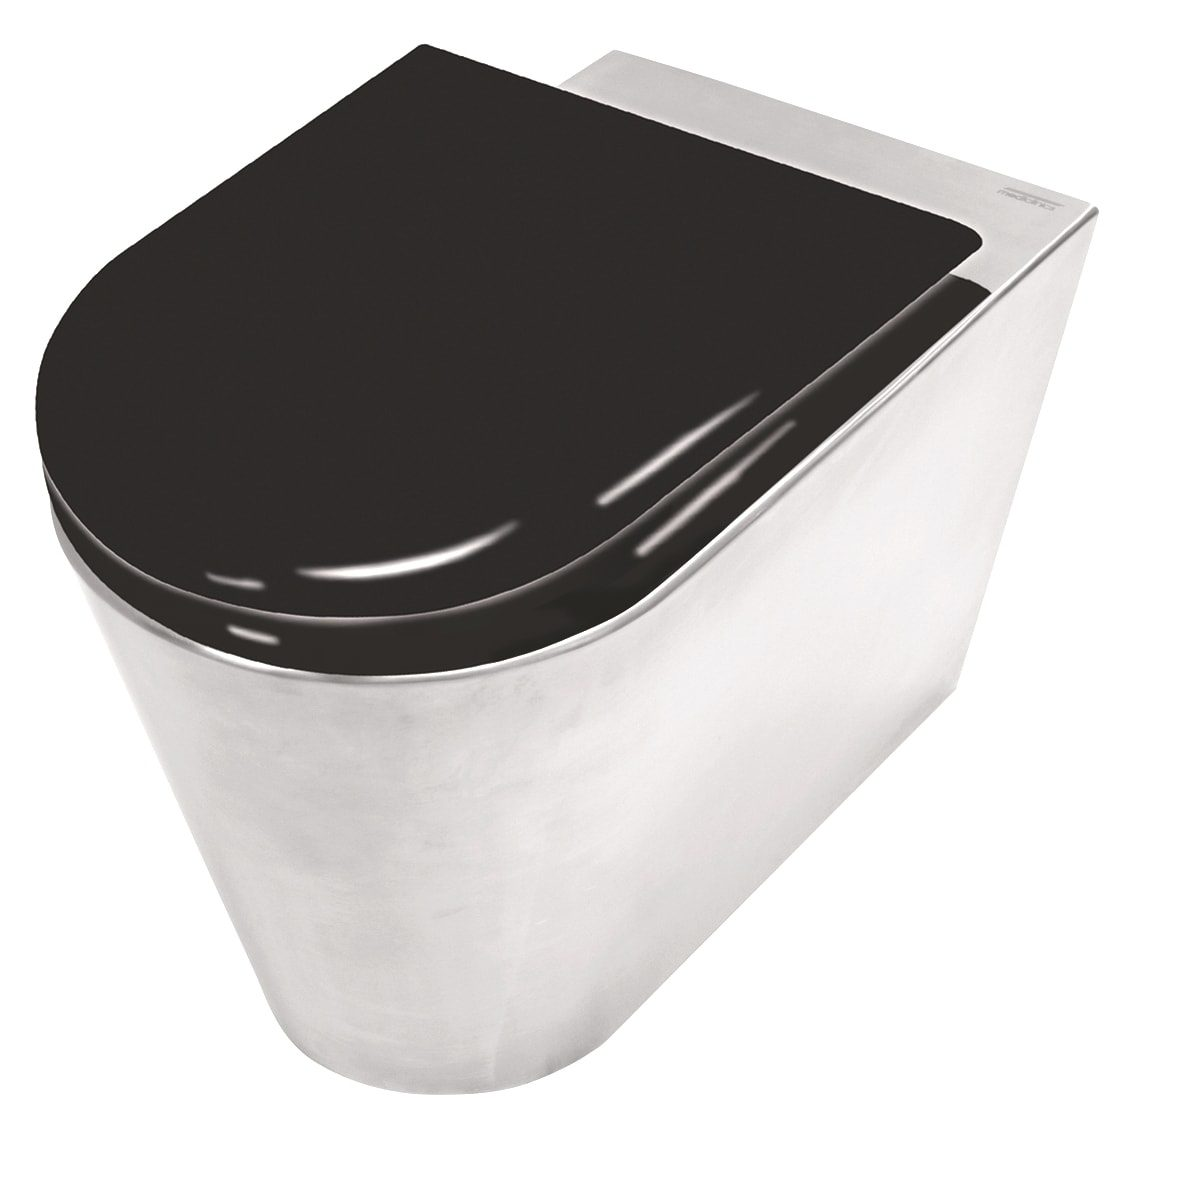 Cool Stainless Steel Toilet With Toilet Seat In Black Painted Wood Camellatalisay Diy Chair Ideas Camellatalisaycom